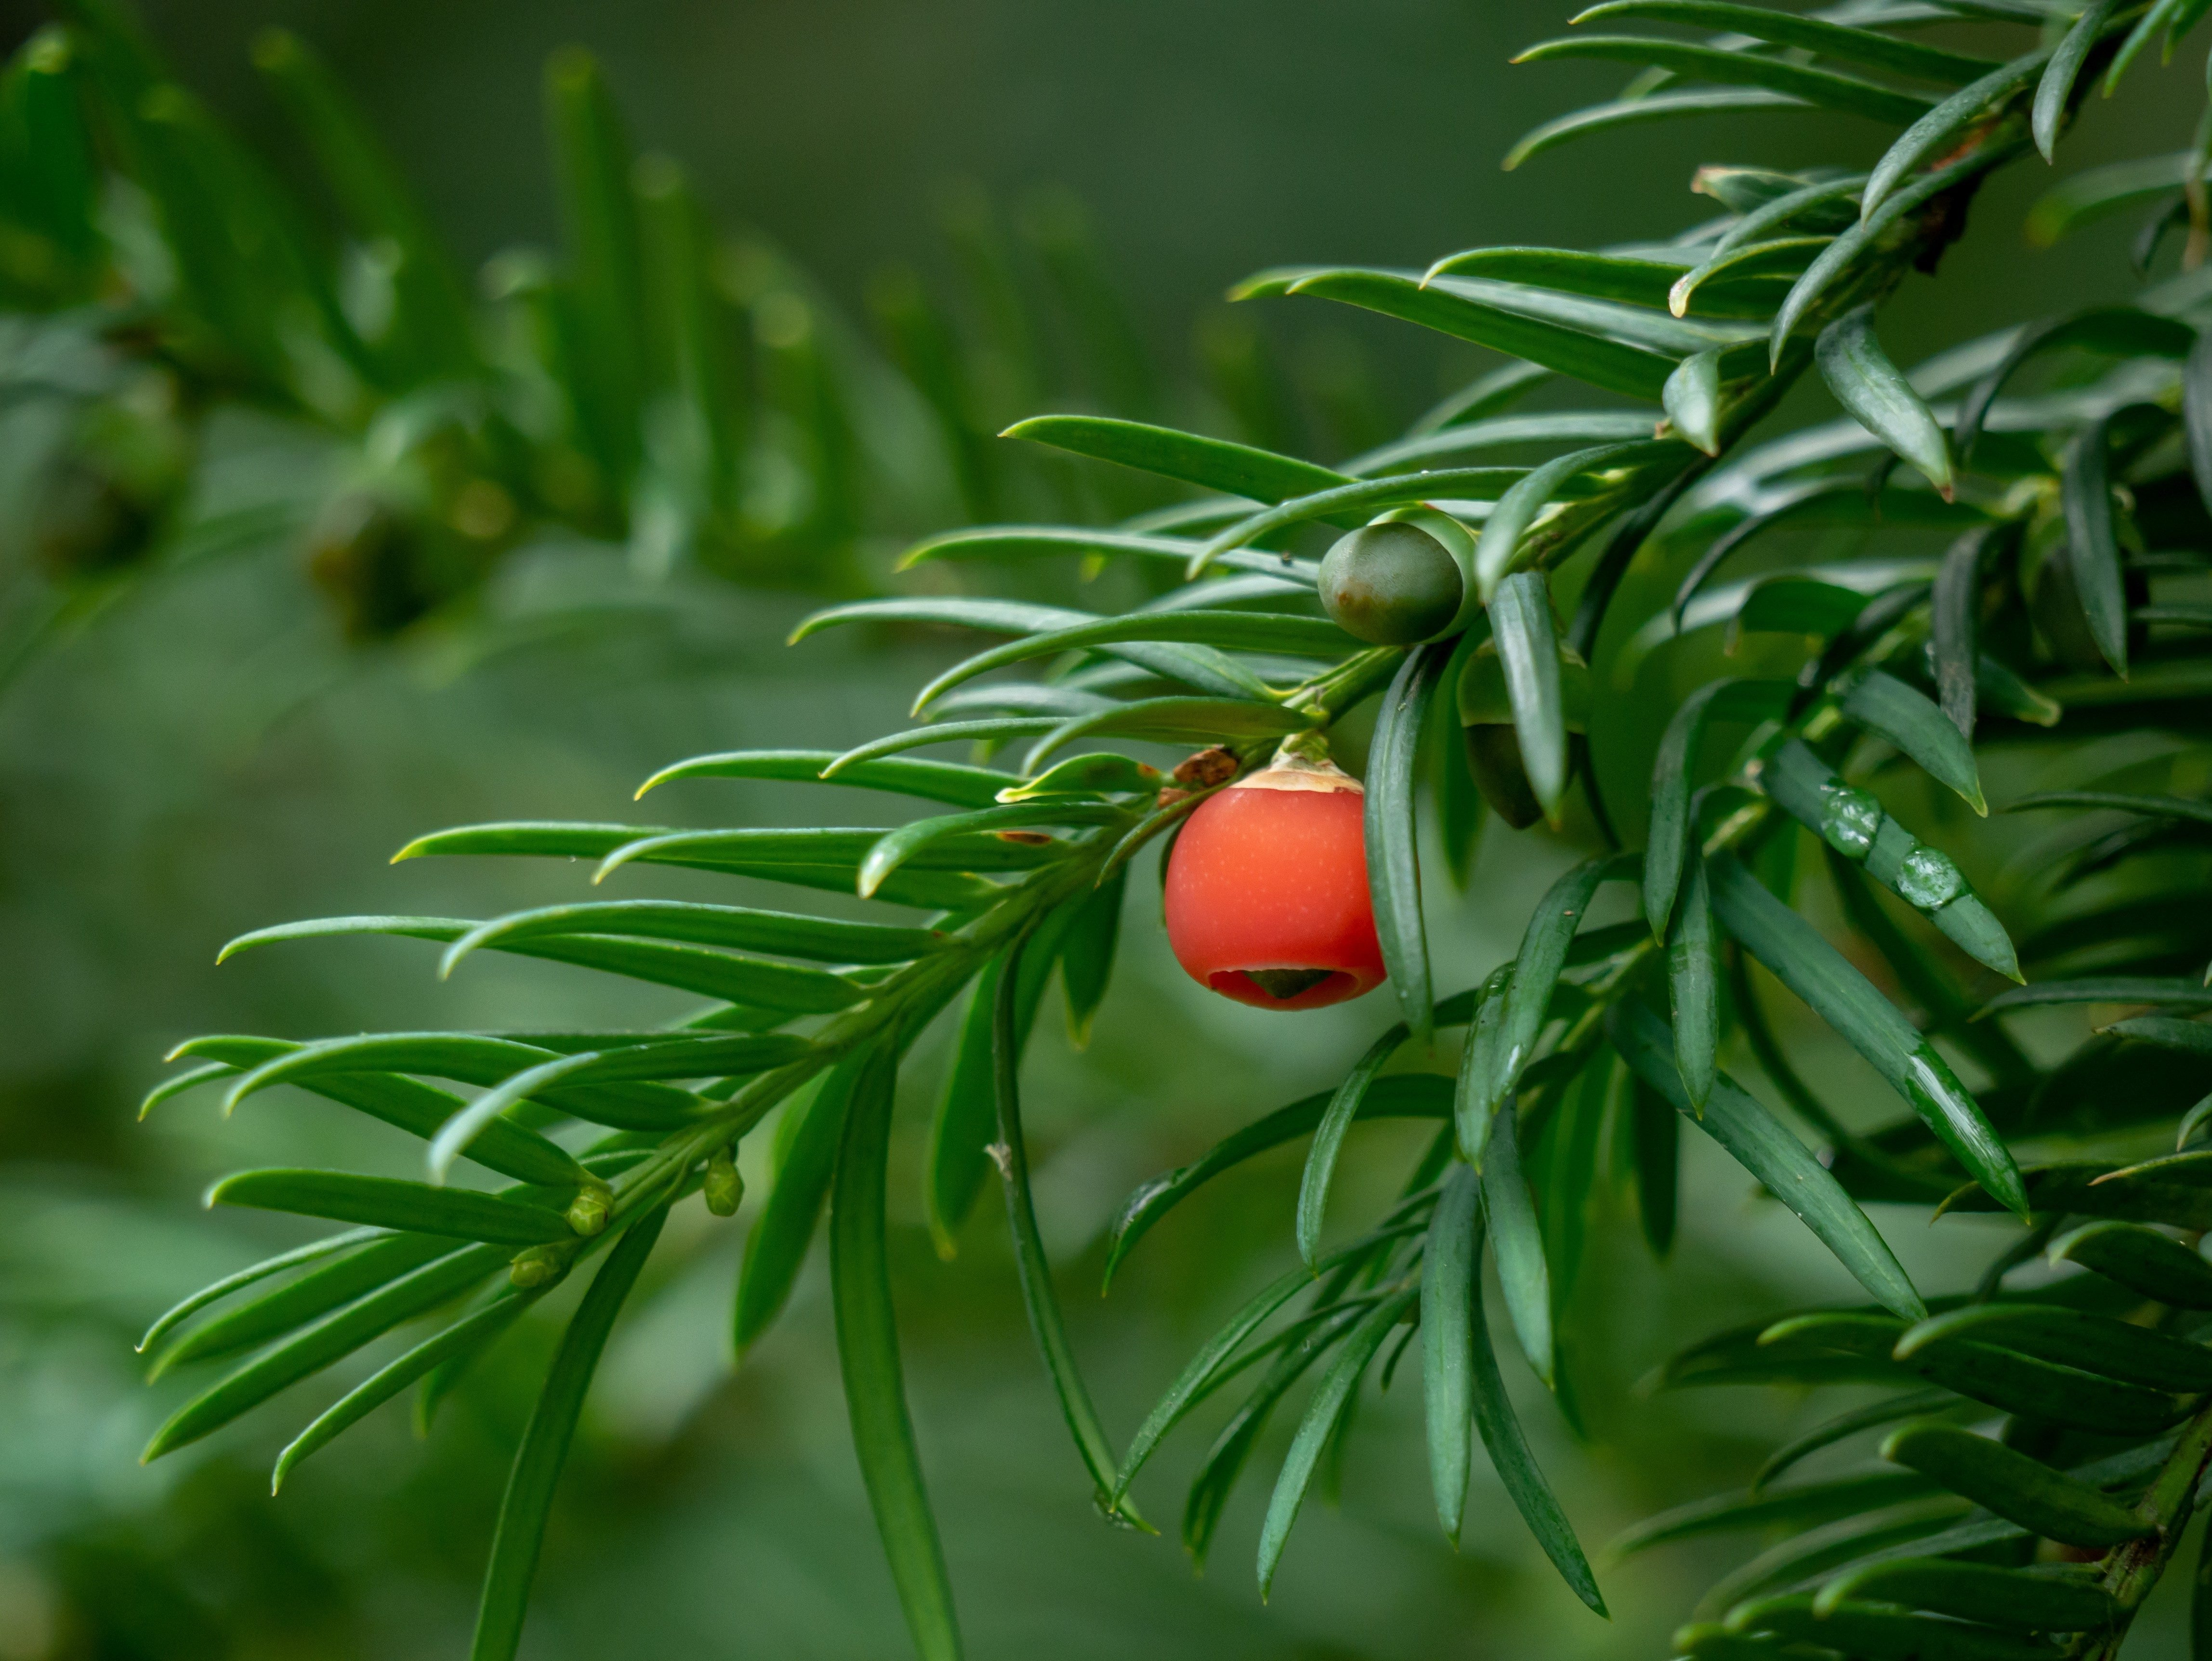 Taxus baccata closeup. Conifer needles and fruits. Green branches of yew tree with red berries (Taxus baccata, English yew, European yew). Green coniferous.